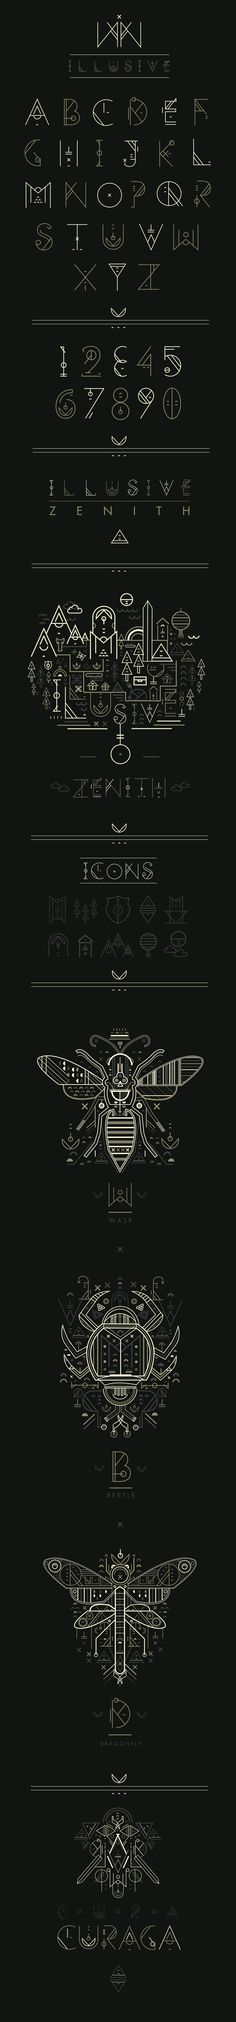 Petros Afshar - brilliant illustration for 'Illusive' and the 'Zenith' album release, focusing on elements of nature, divinity and euphoria. Below showcases a variation of the 'Illusive' font with illustrations that contain exact elements used to create the typeface.